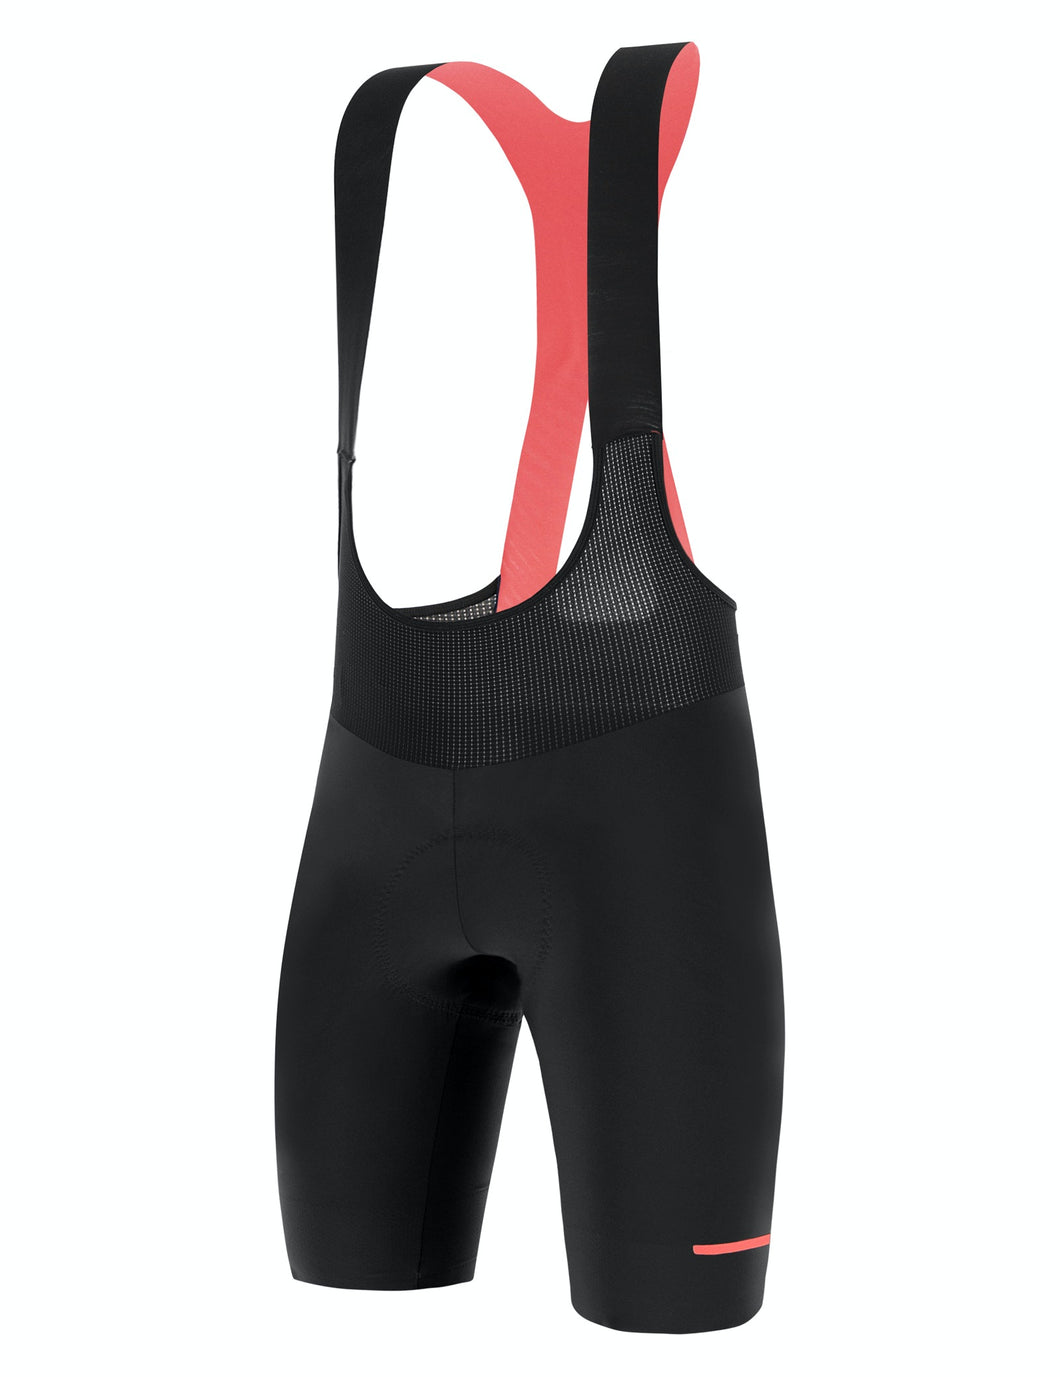 Santini Women's Redux Instinto C3W Bibshort, 2020 - Cycle Closet